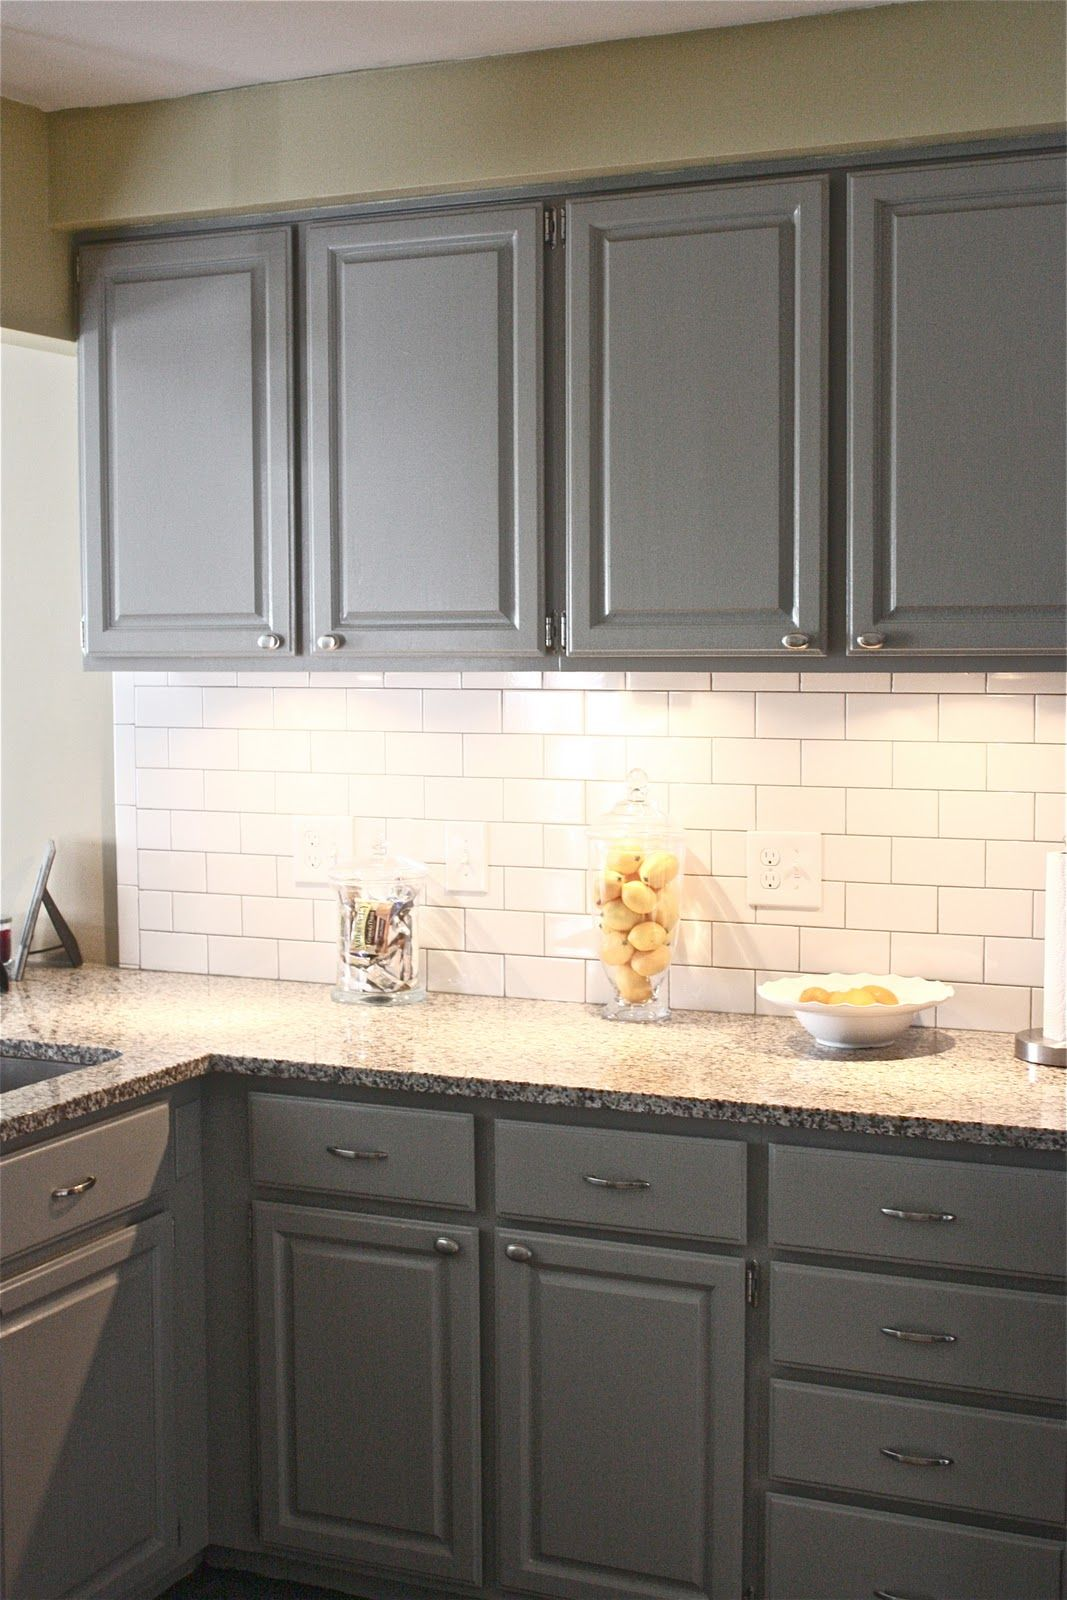 White Cabinets Corian Countertops With Tile Floor